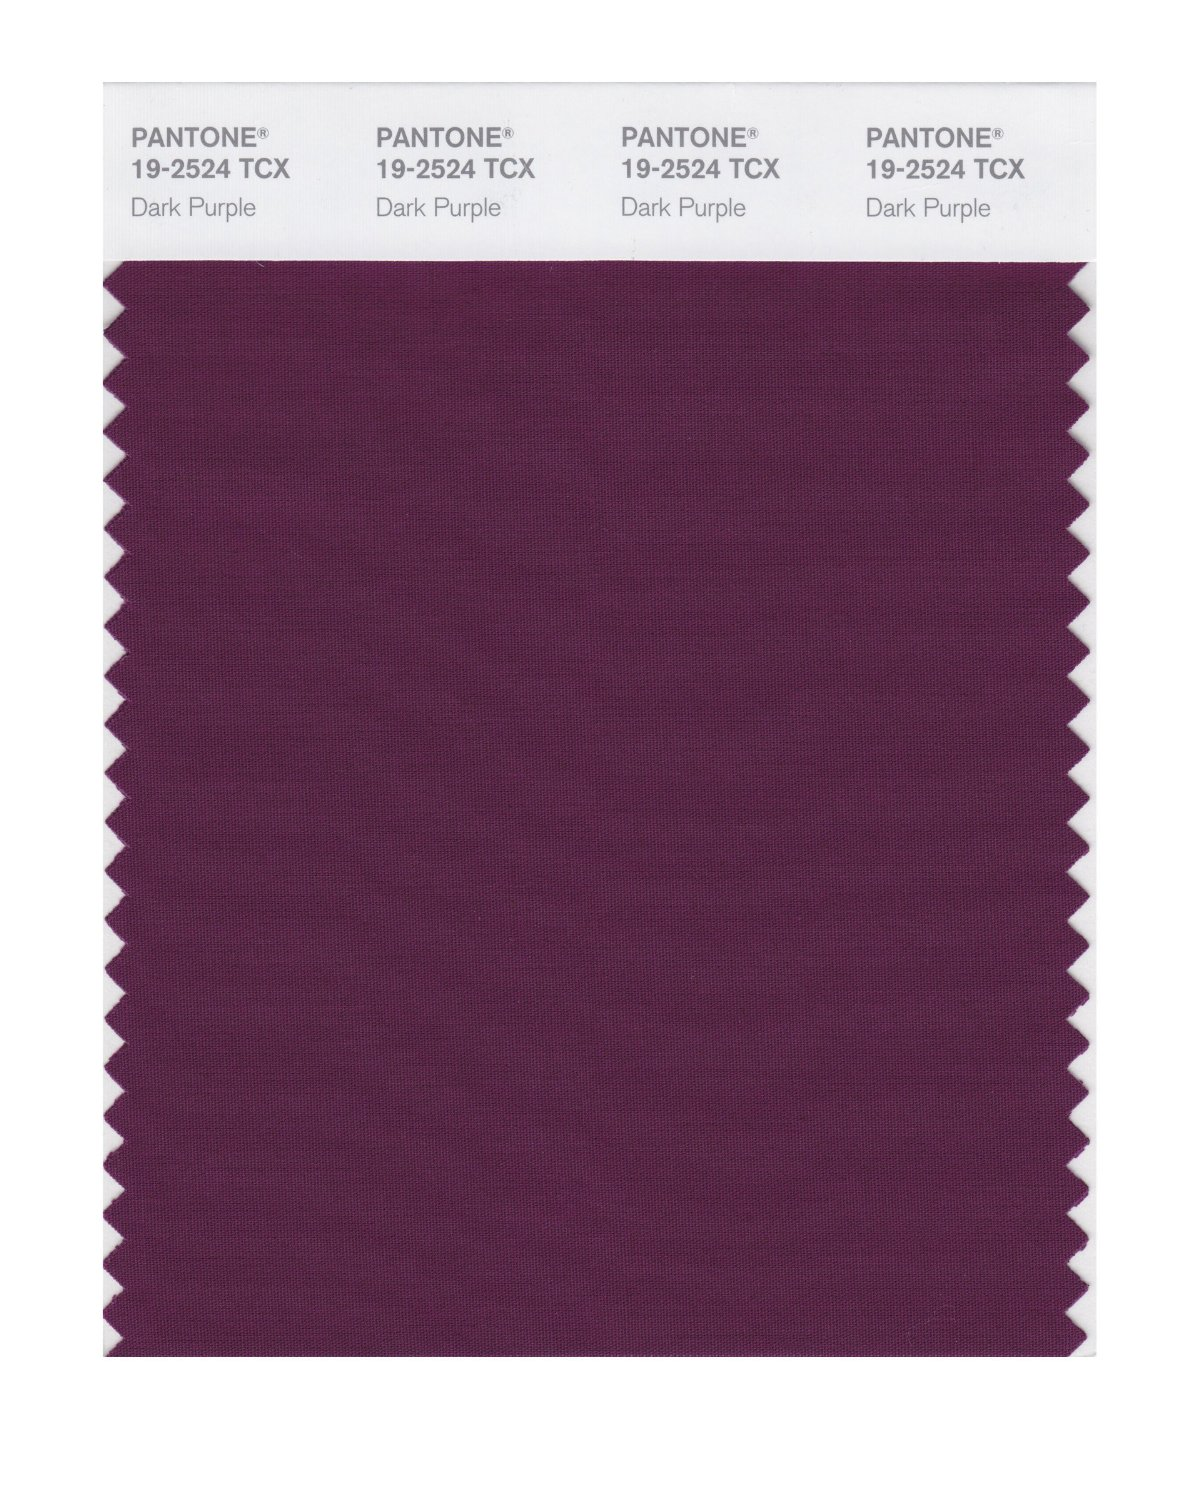 Pantone Smart Swatch 19-2524 Dark Purple